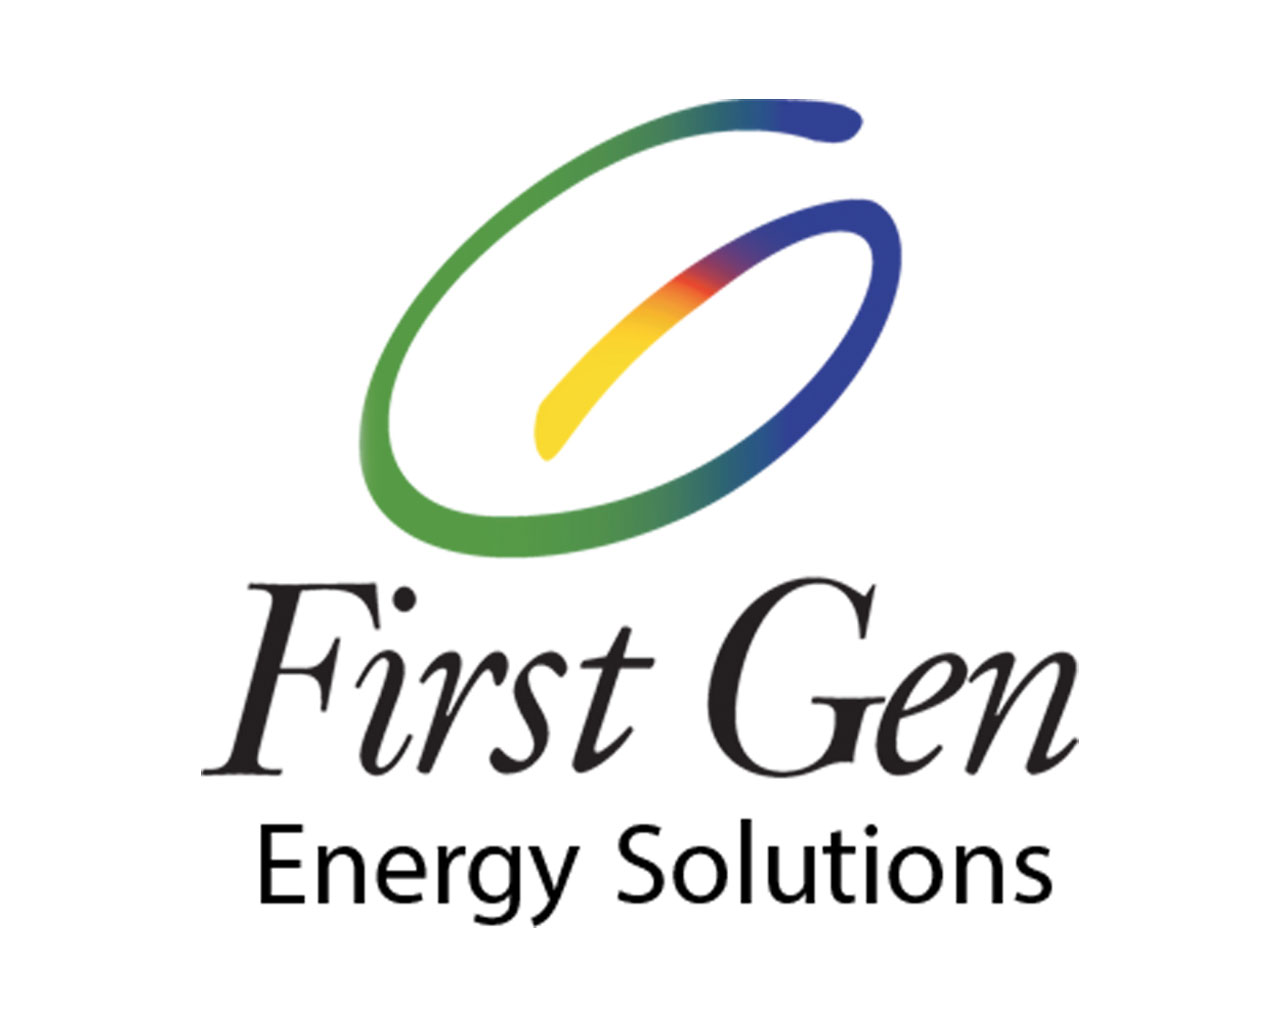 First Gen Energy Solutions Inc. (FGES), Philippines